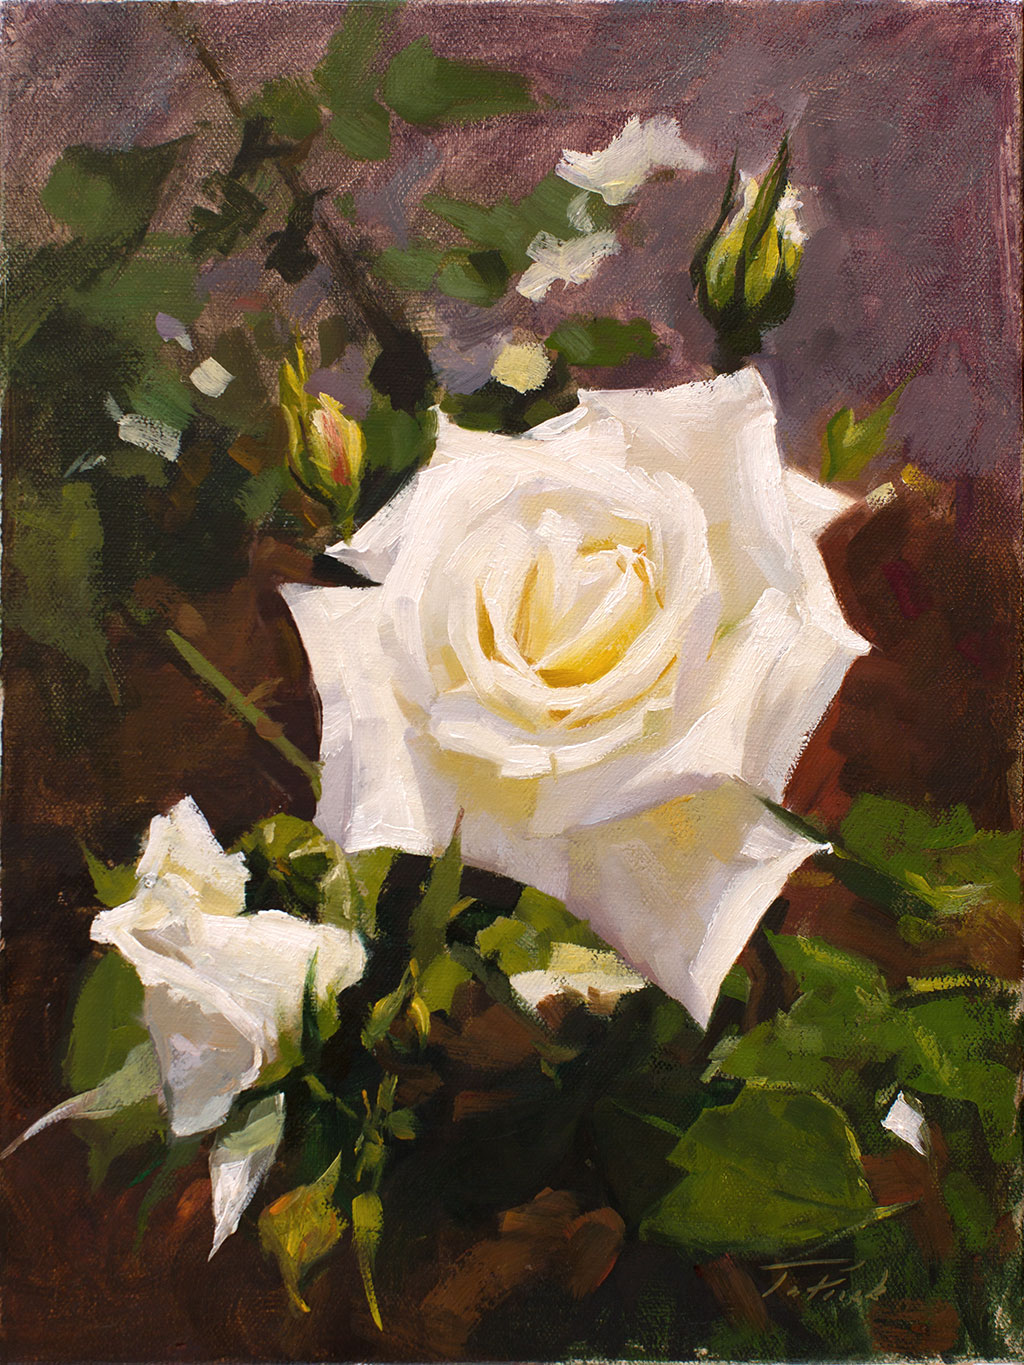 Patrick Saunders Fine Arts Floral Painting Oil on Canvas White Rose